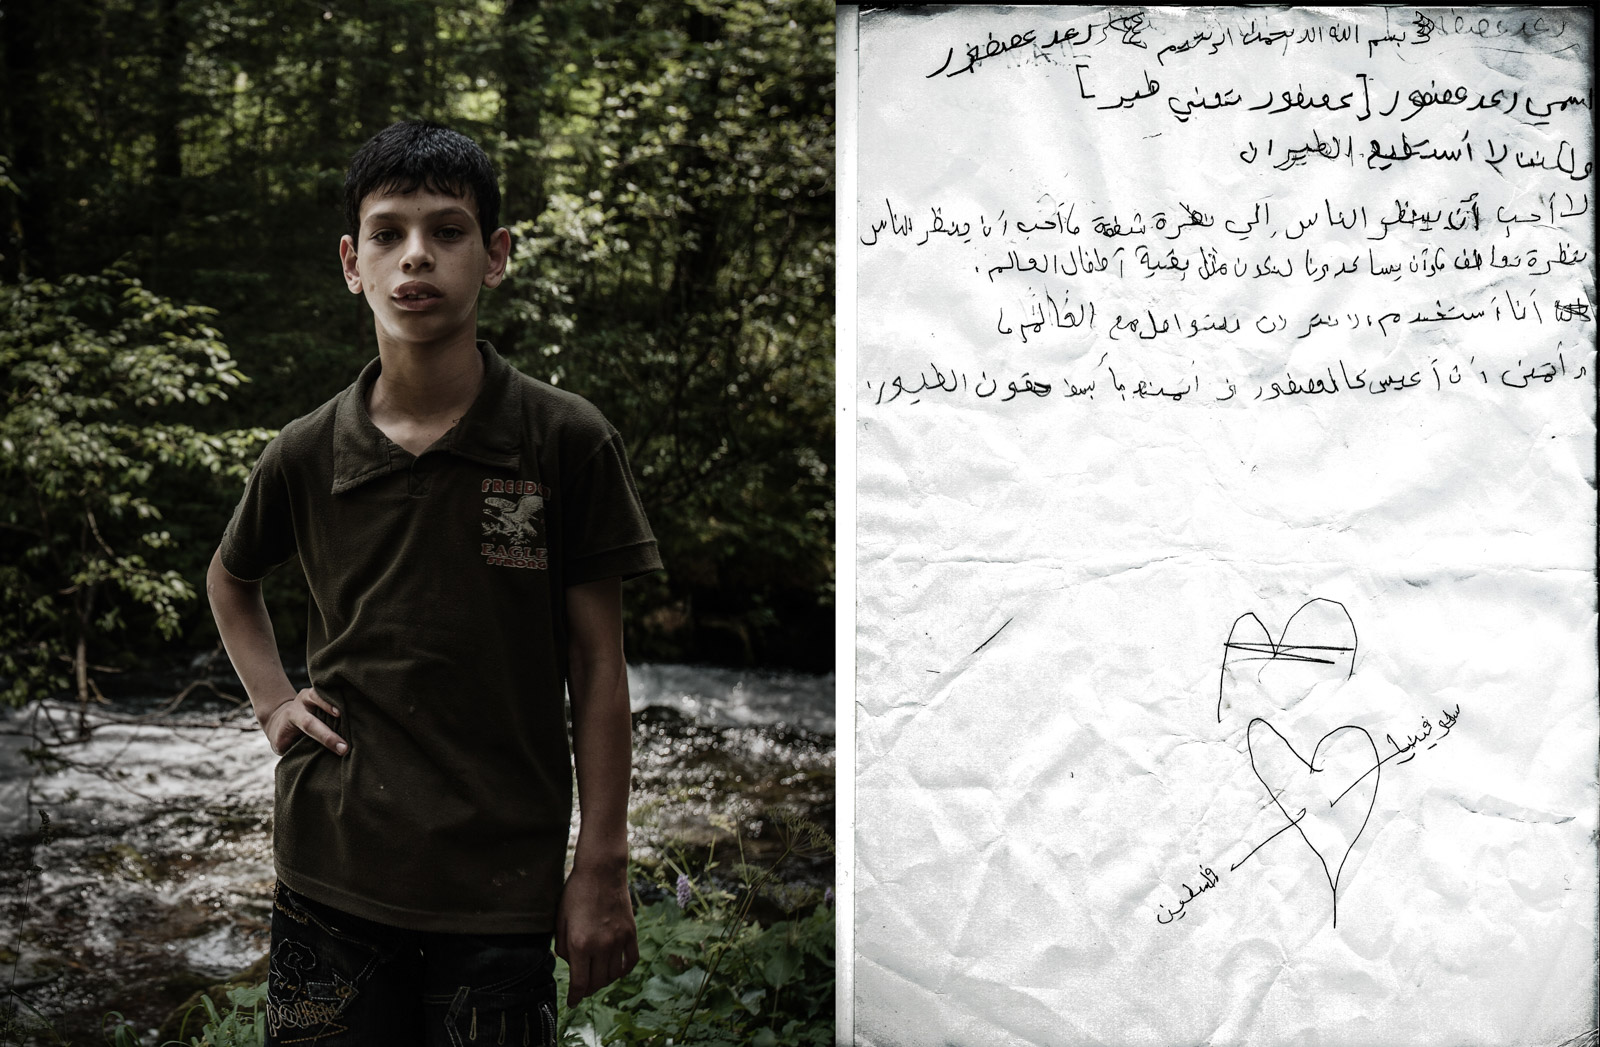 "Kamniška Bistrica, Slovenia - July 3, 2010: RIGHT: Portrait of Rae'ed Asfour, who drowned in Mediterranean sea on September 6, 2014 while attempting to flee from Gaza. LEFT: A scanned letter Rae'ed wrote in 2010 during his rehabilitation stay in Slovenia. Letter reads: ""My surname (Asfour) translates a bird from Arabic. But I cannot fly or even move freely. I don't want people to look at me with pity. I just want them to sympathize with me, and help me to feel I am normal like other children around the world. I use internet to communicate with the outside world and I wish to live like a bird and enjoy our basic rights. Palestine-Slovenia."